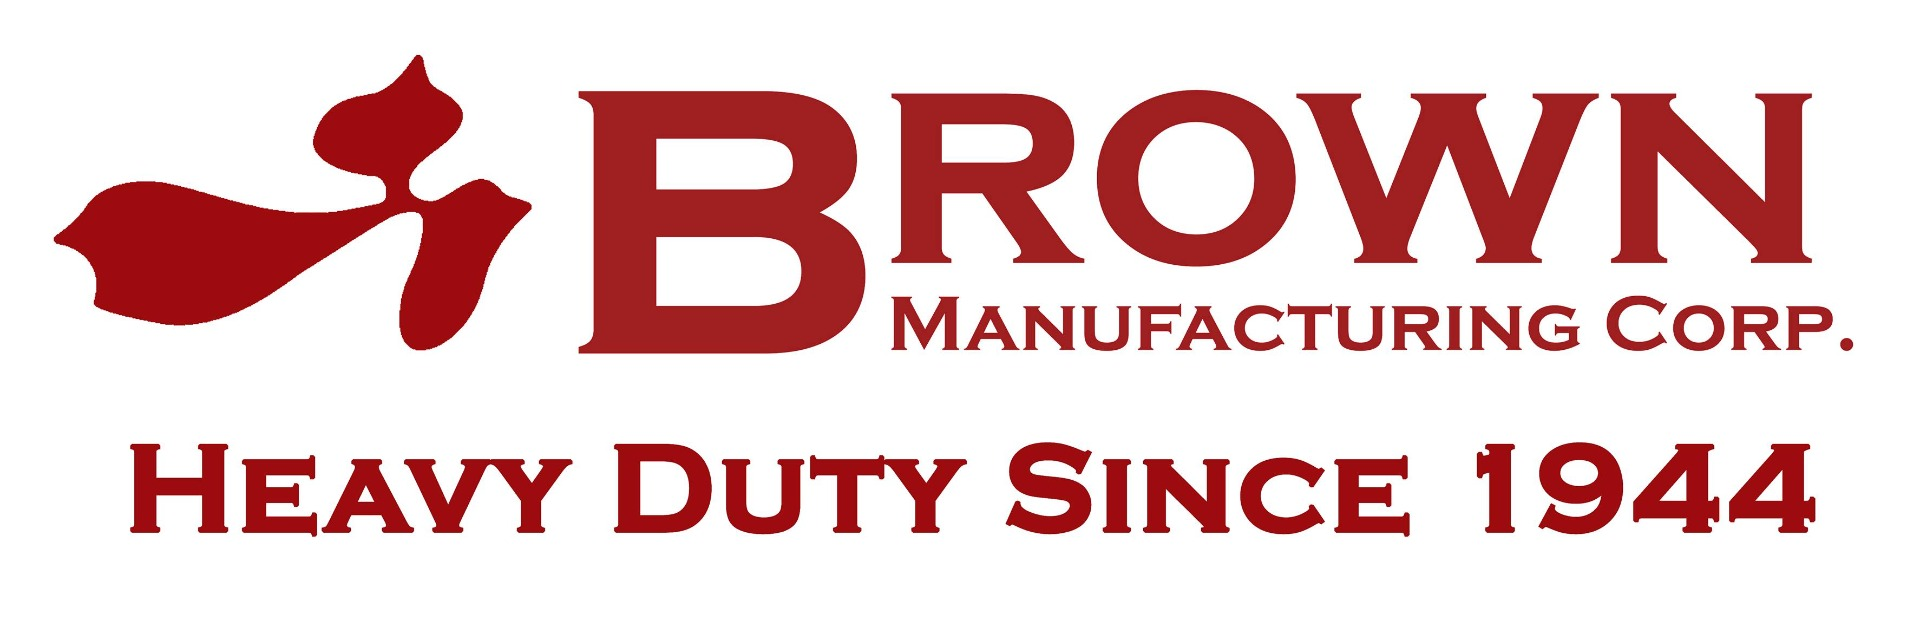 Brown Manufacturing Logo.jpg